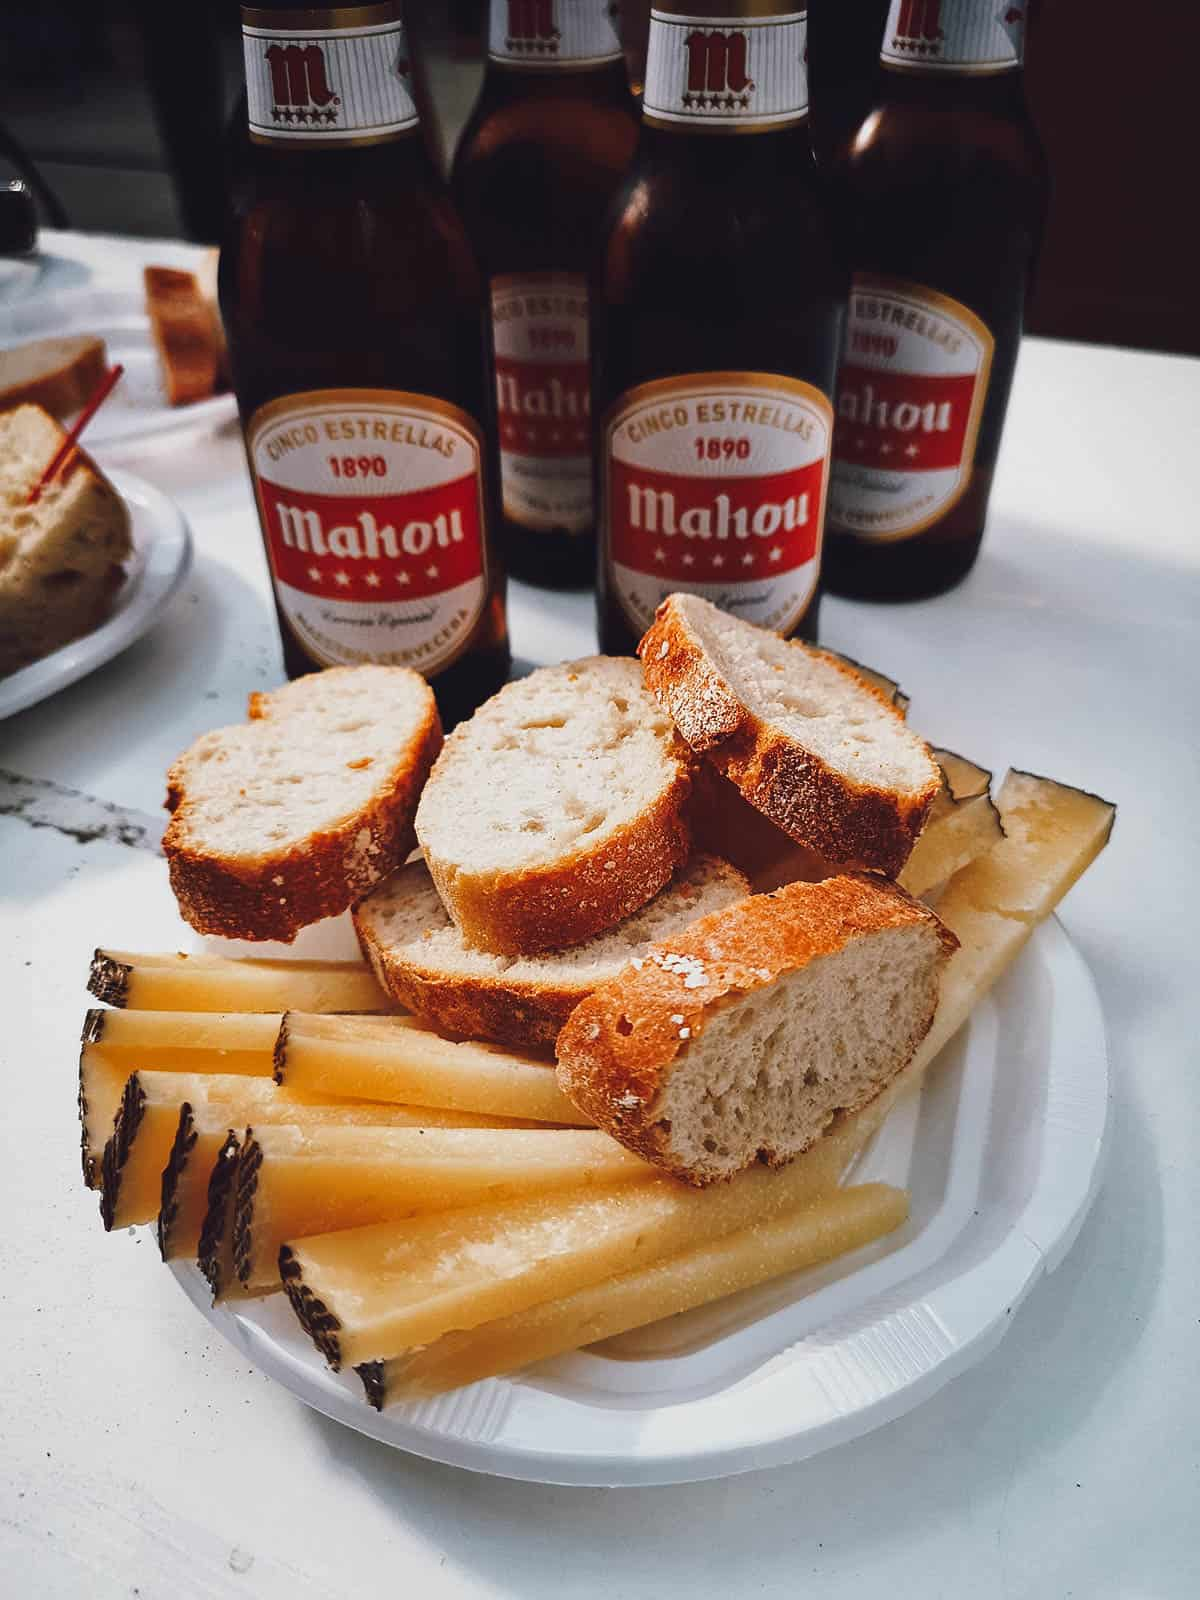 Cheese, bread, and beer